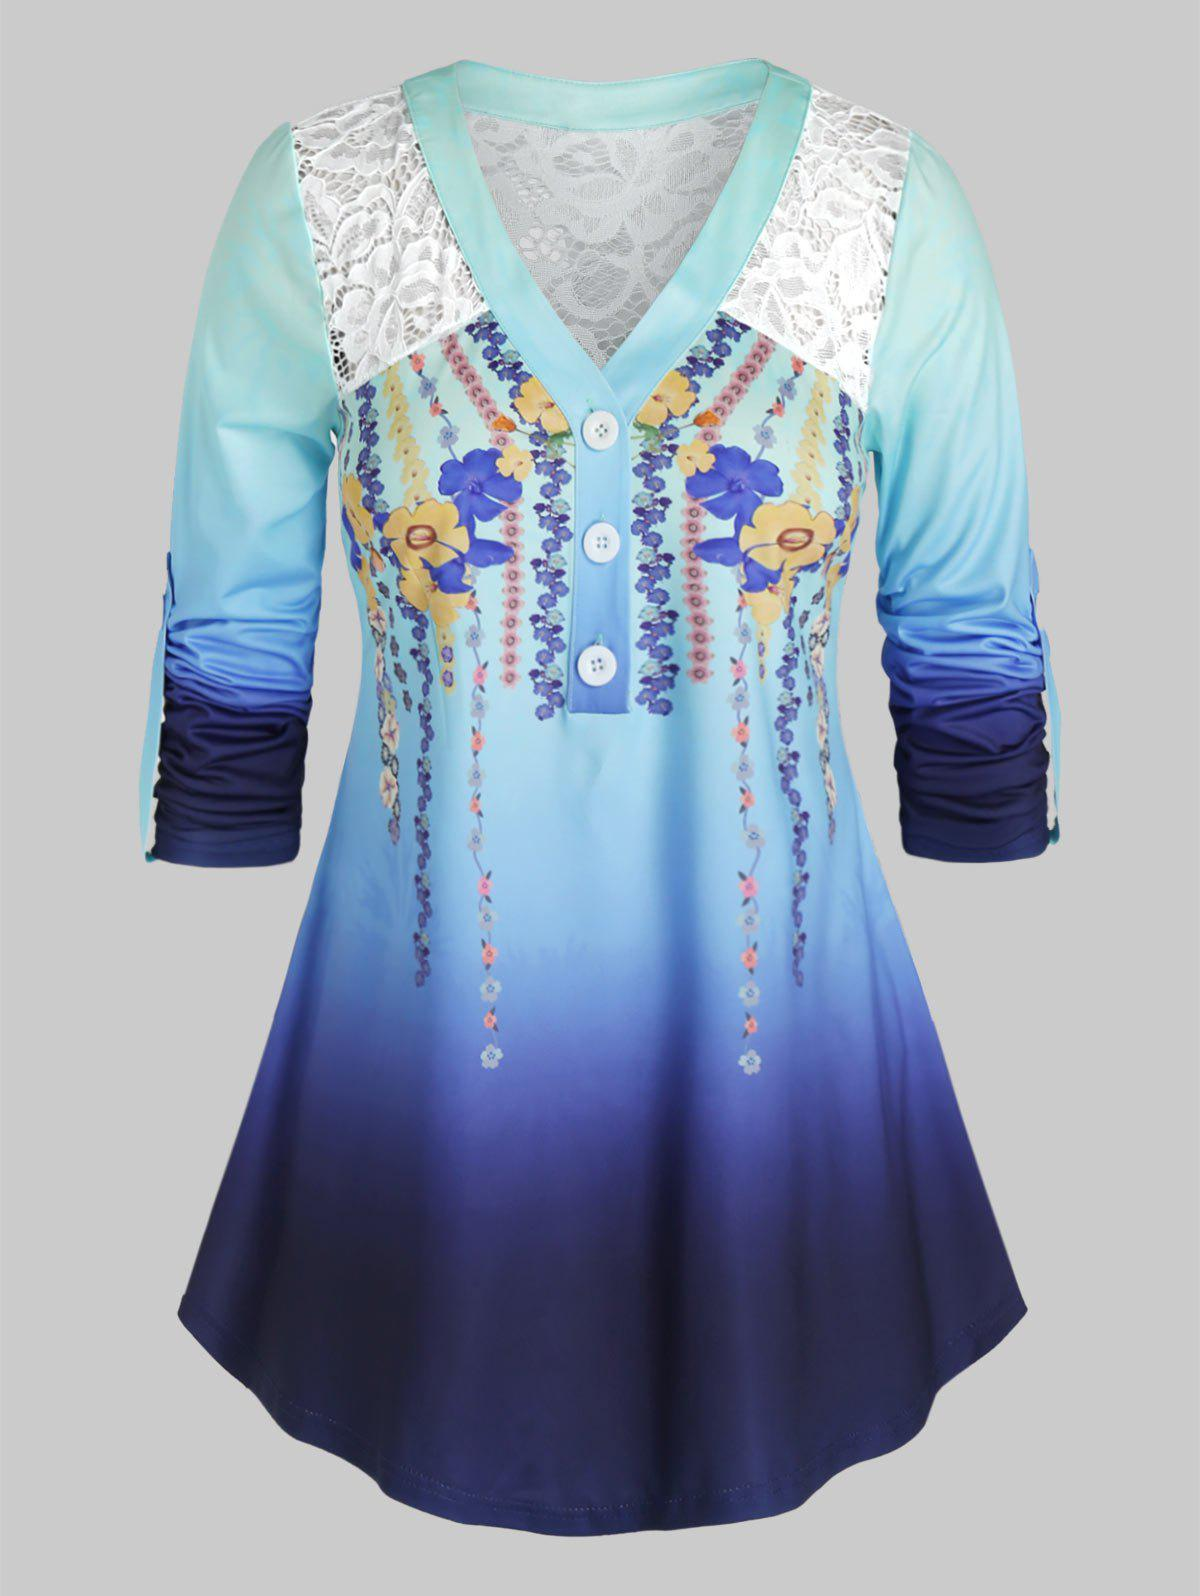 Plus Size Lace Panel Ombre Flower Roll Up Sleeve Top - OCEAN BLUE 5X